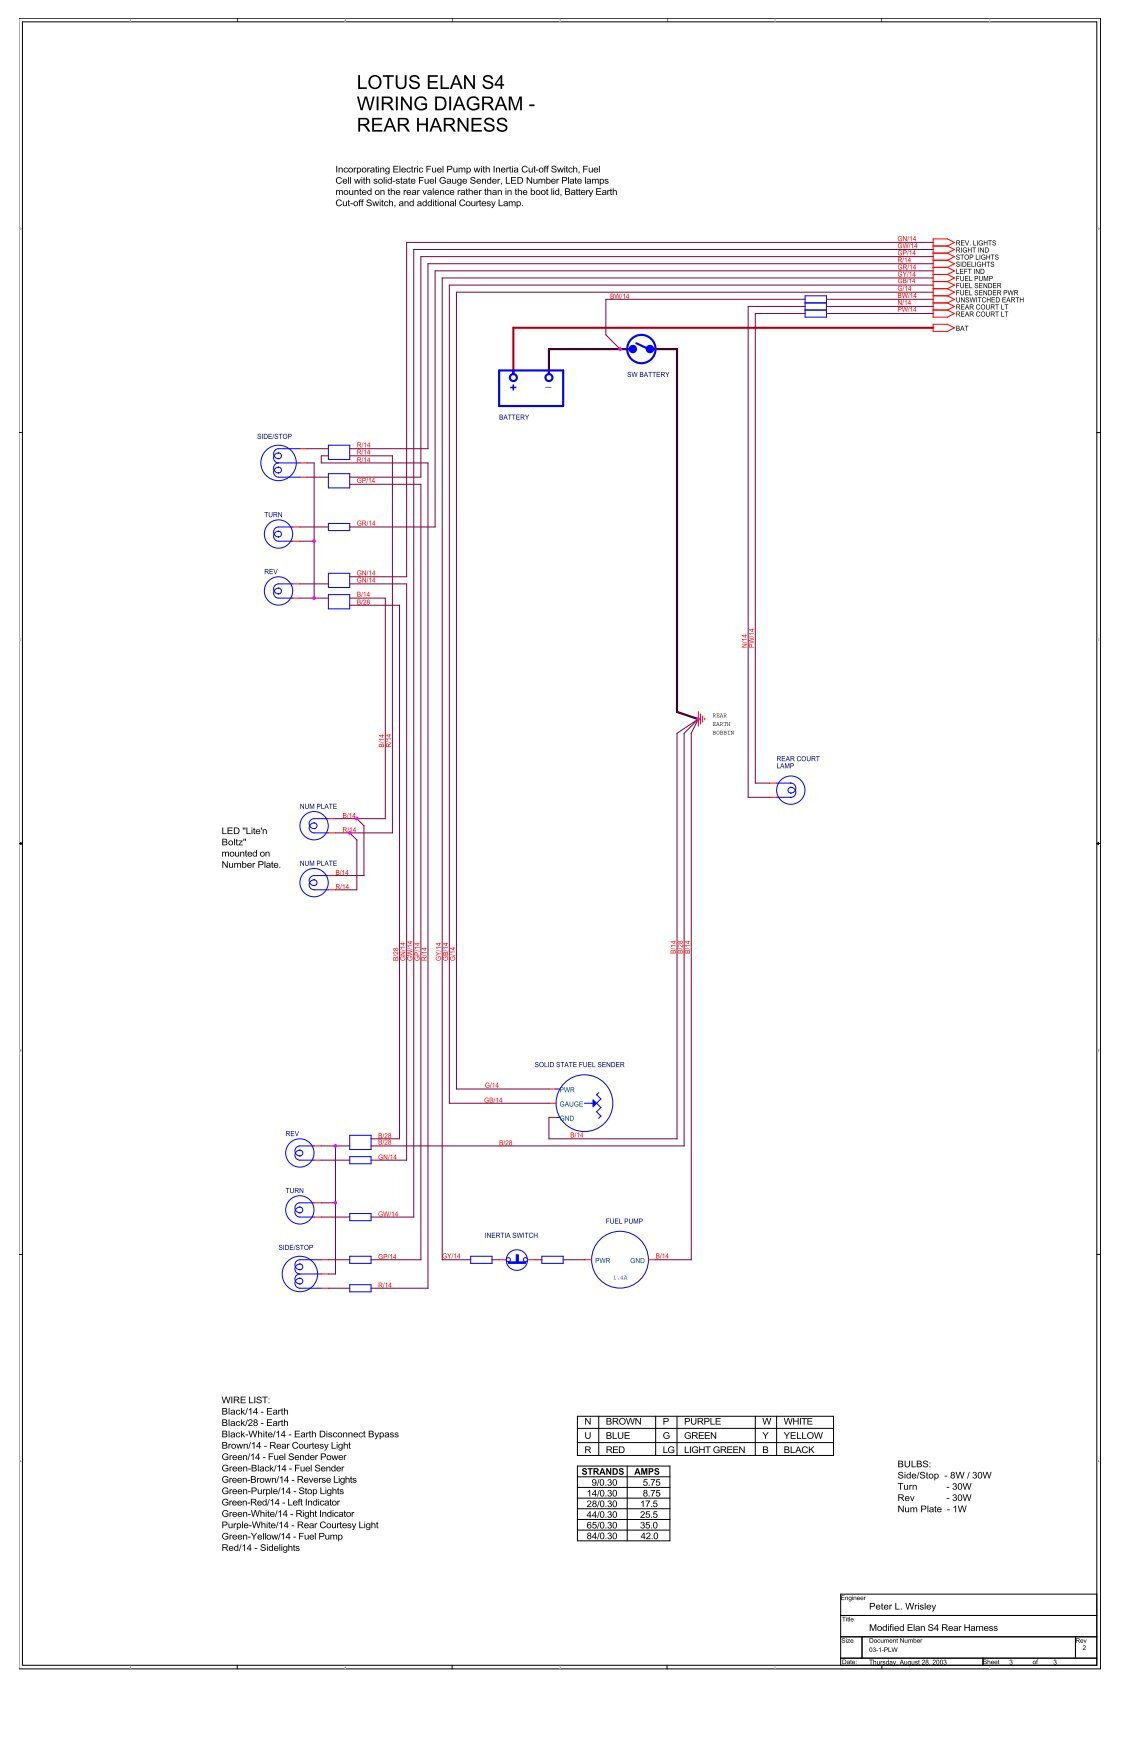 Daewoo Lanos Fuel Pump Wiring Diagram Library Engine Diagrams Nubira Electrical Mazda Cx 9 Stereo